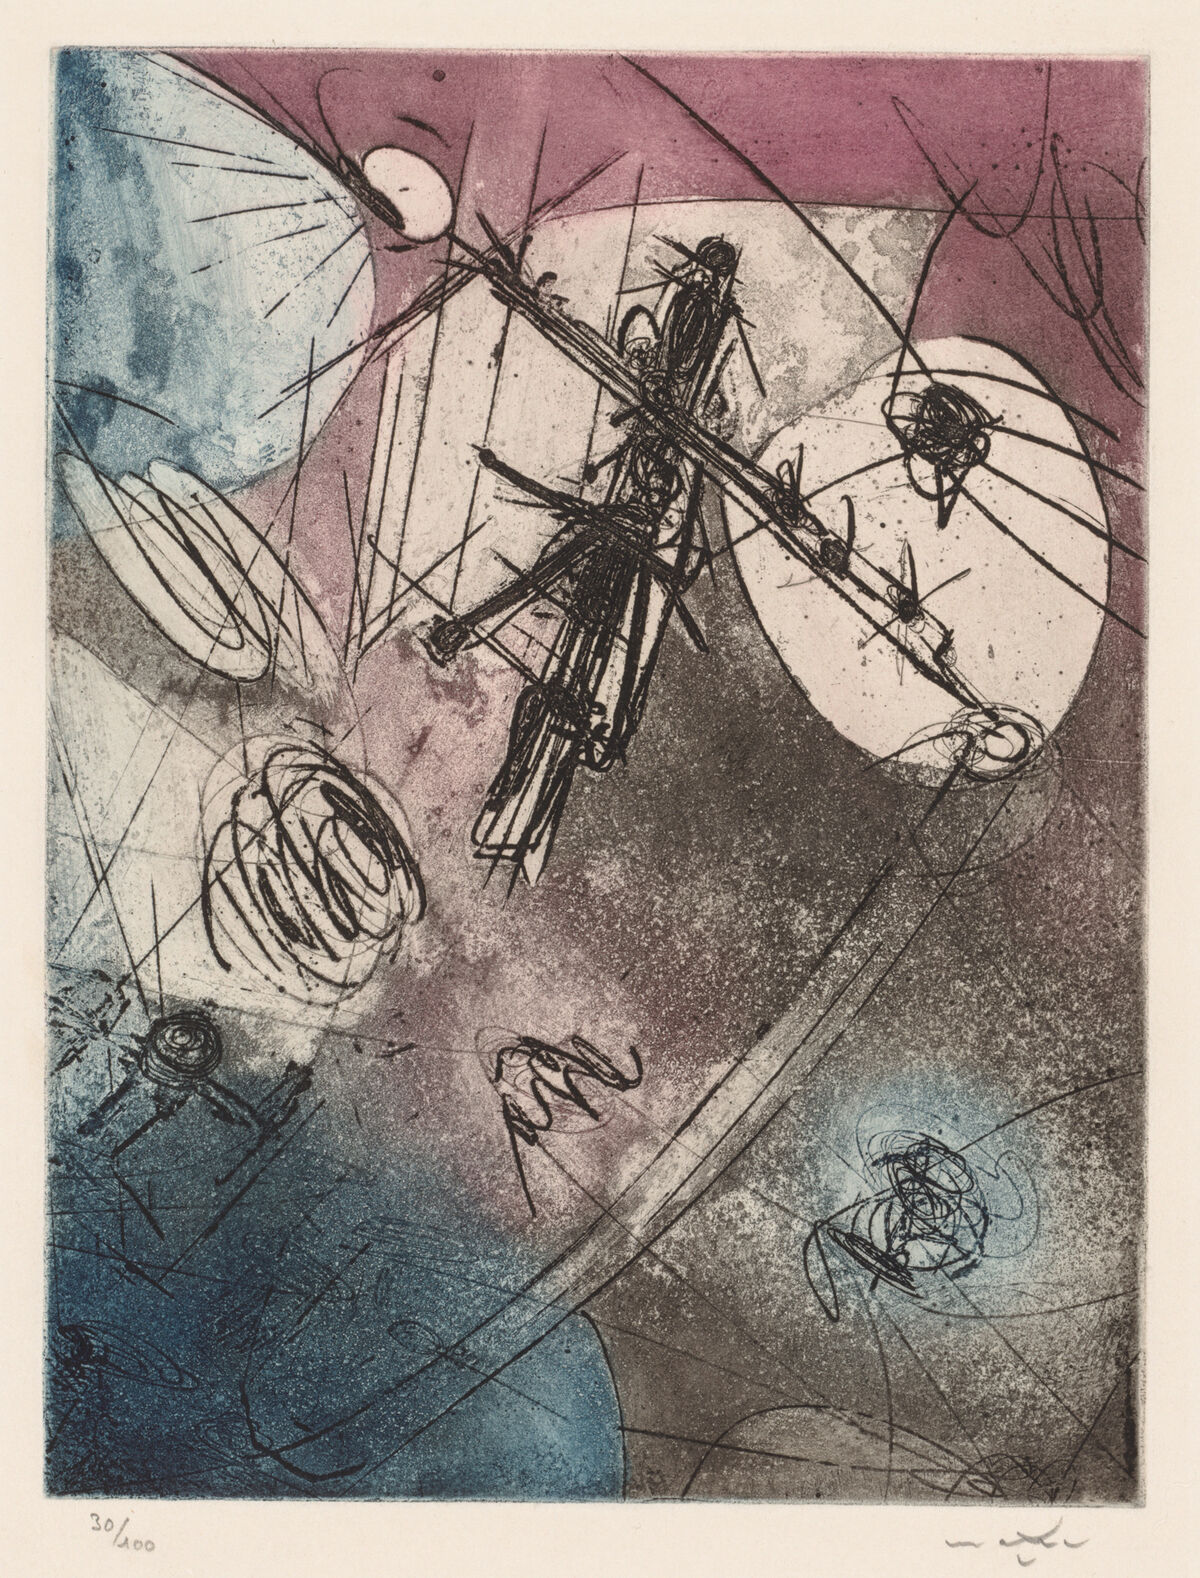 Roberto Matta, Castronautes, 1965. © Artists Rights Society (ARS), New York. Courtesy of The Cleveland Museum of Art.